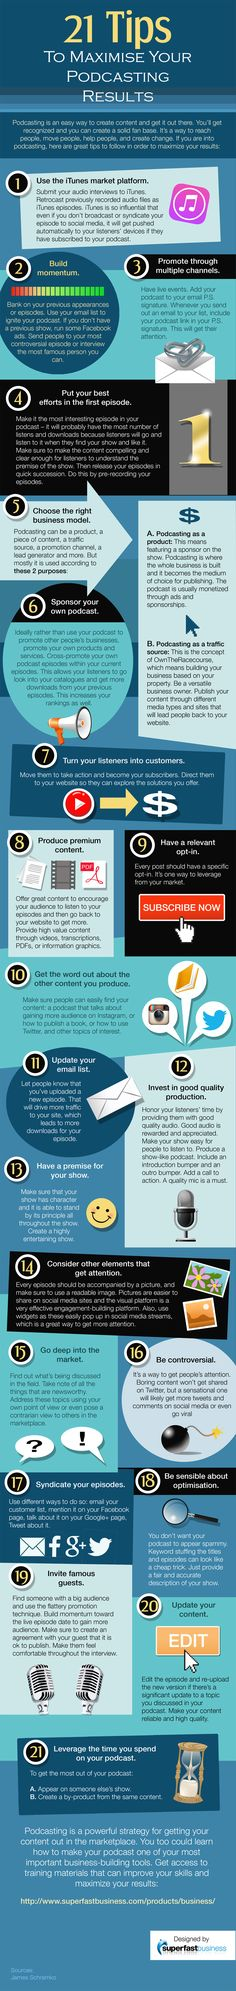 Savvy Podcasting Tips for Small Business Owners #infografia #infograph #socialmedia #redessociales #marketingdigital #marketingonline